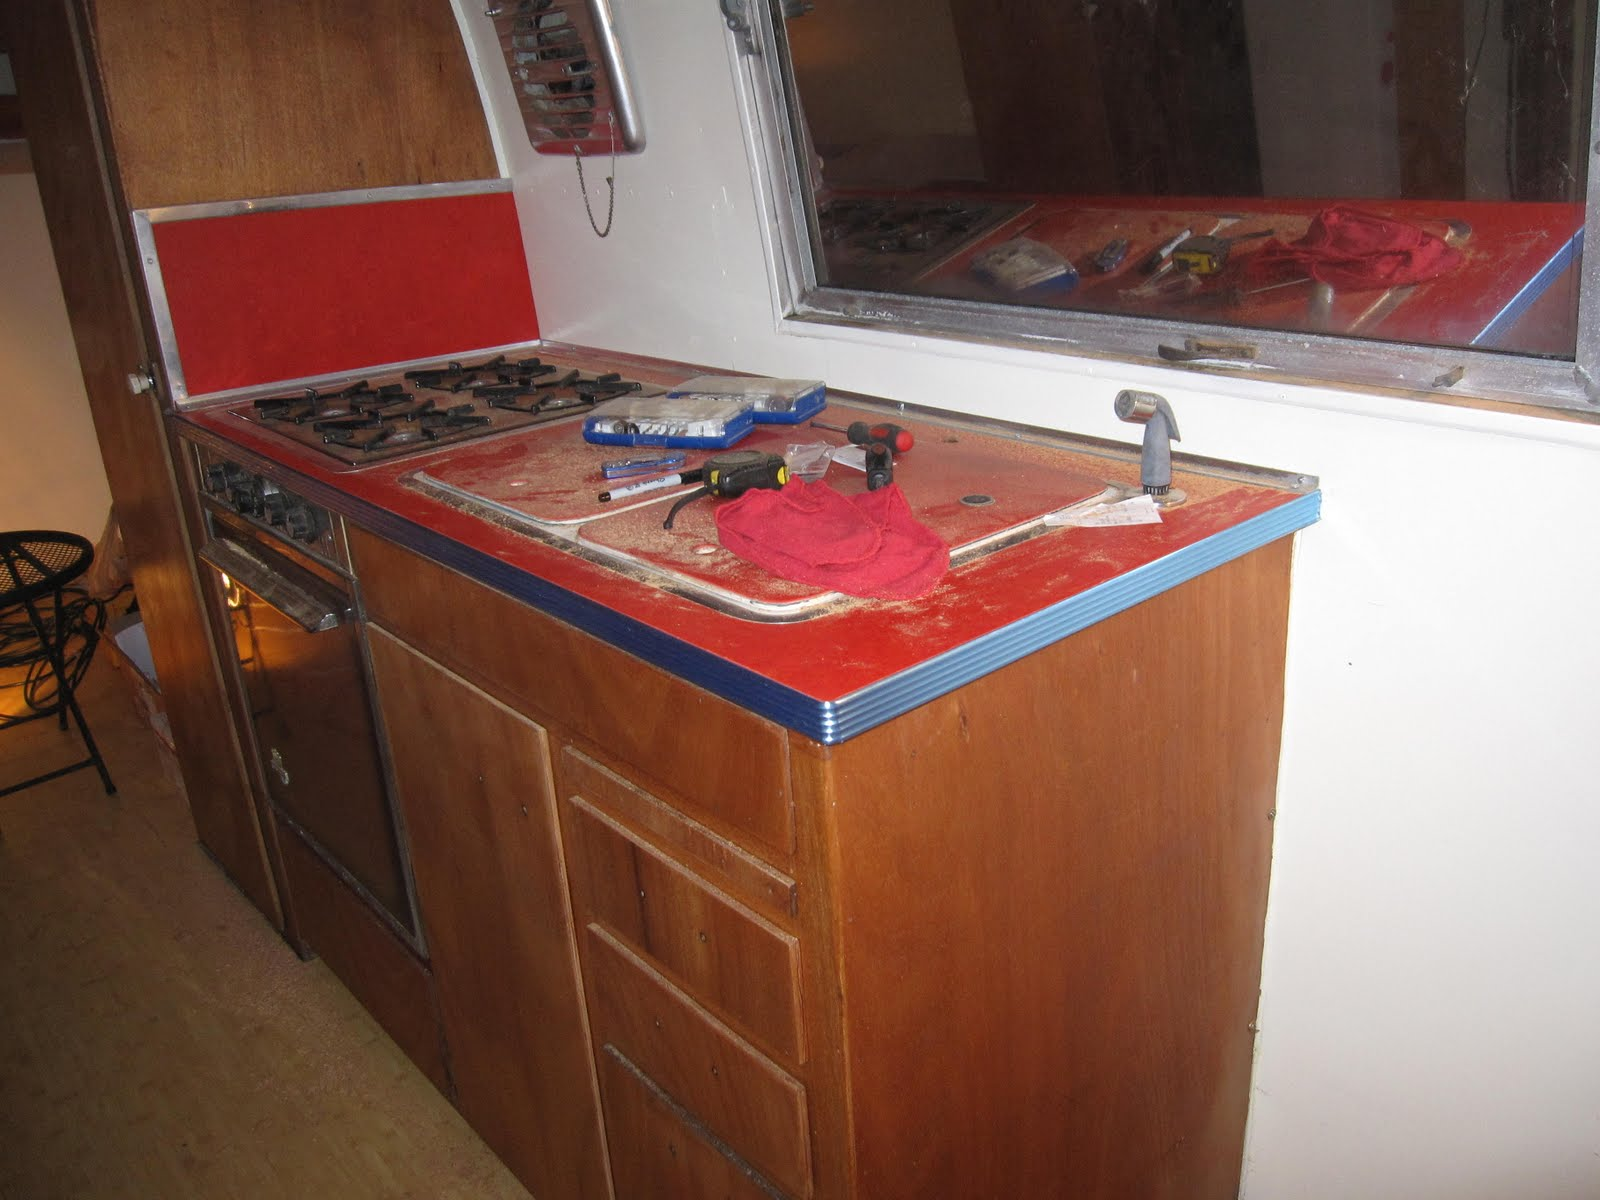 bullet bessie img edging countertop the and kitchen countertops bouncing bath